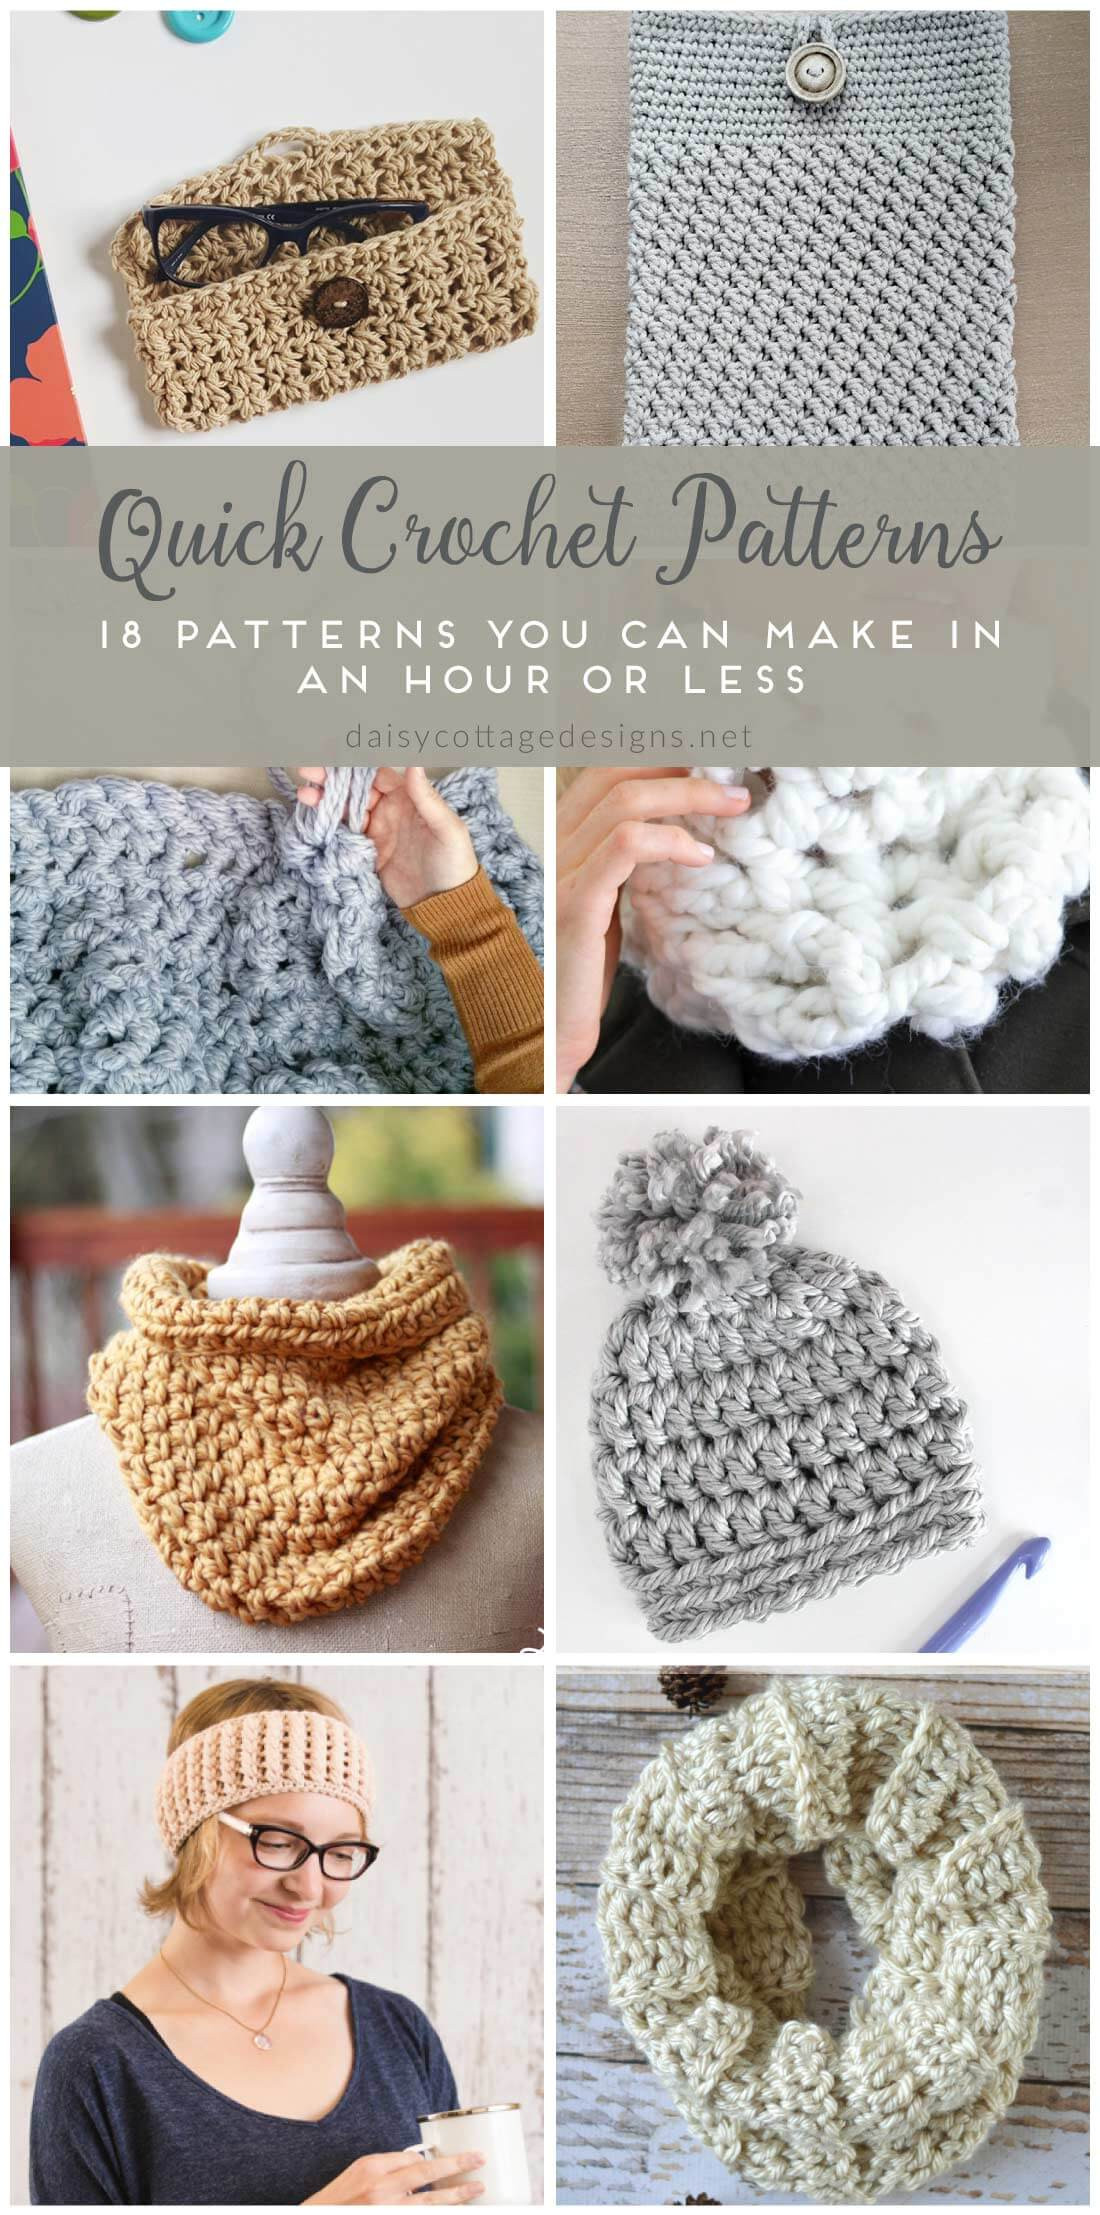 Crochet Projects New Easy Crochet Patterns Free Crochet Patterns On Daisy Of Unique 44 Pictures Crochet Projects